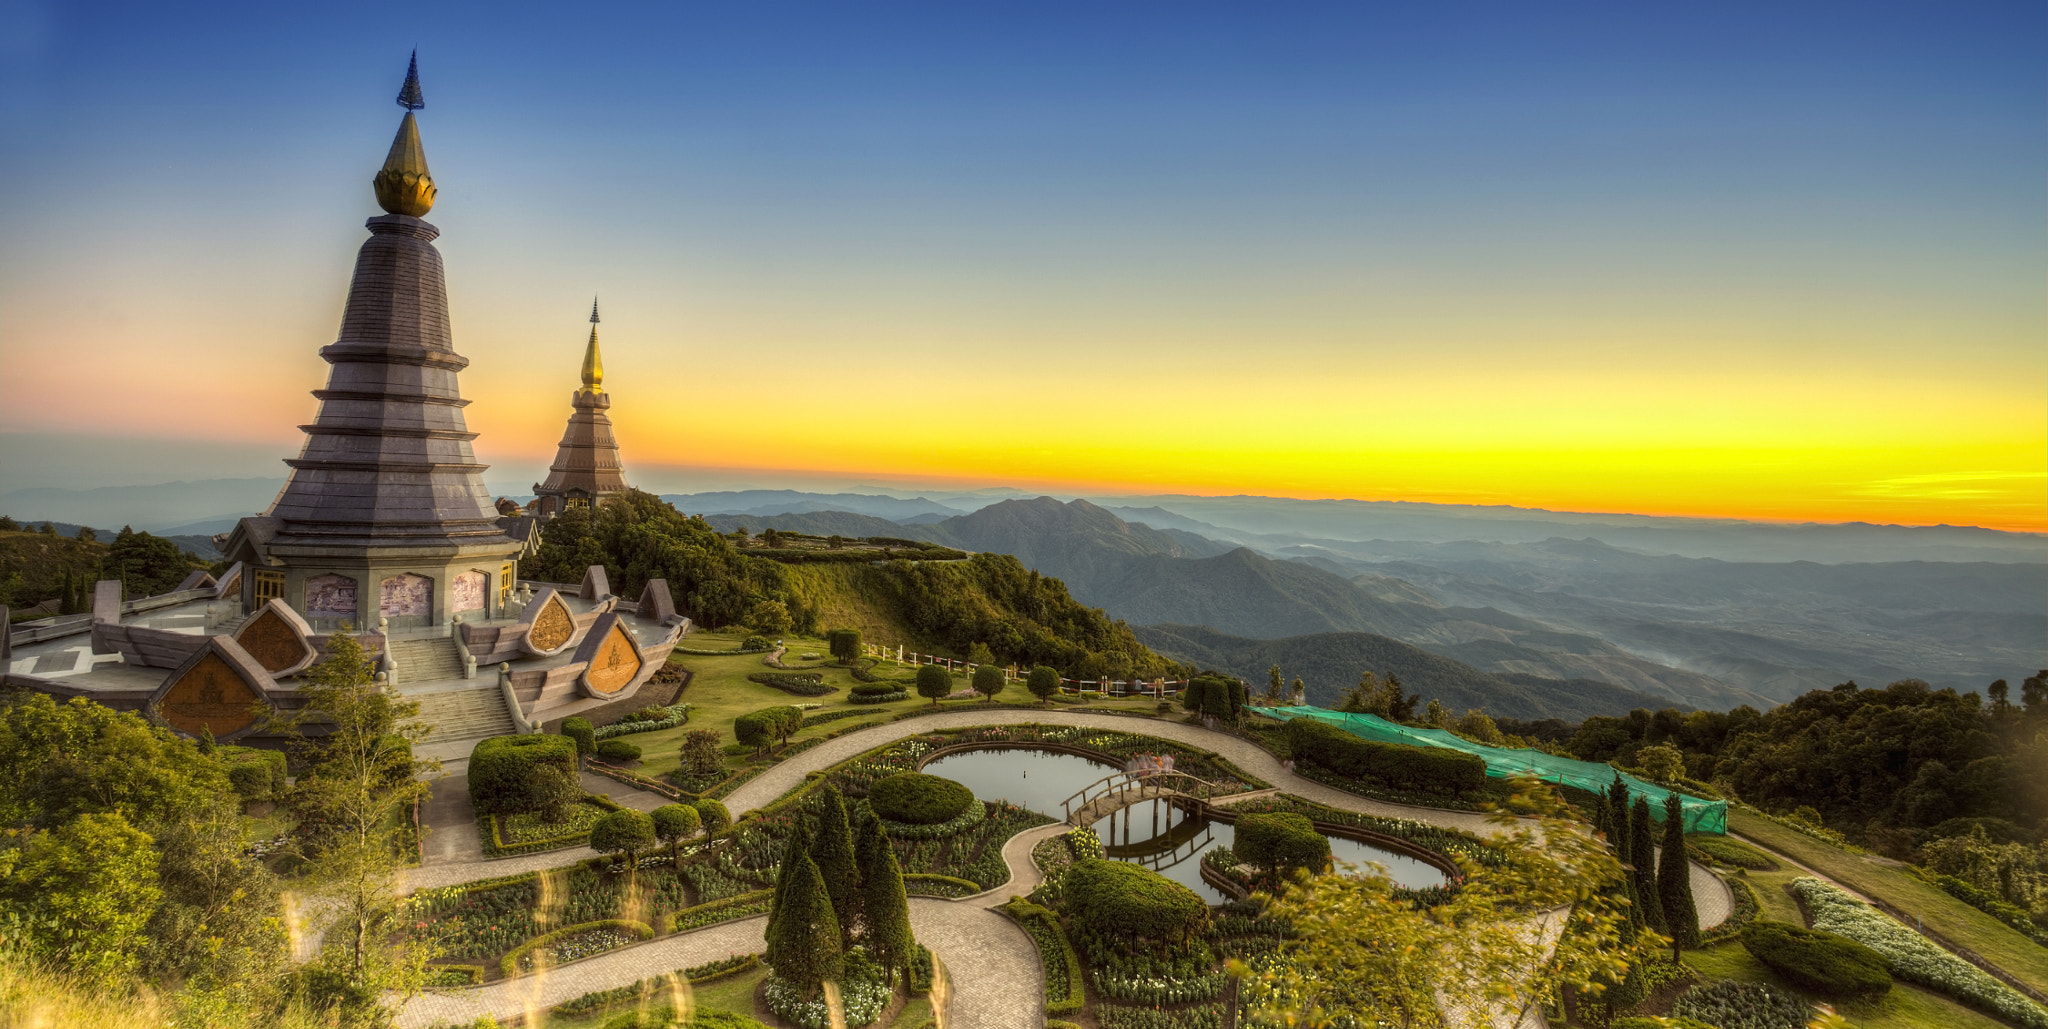 Photograph Landscape of  Two pagoda at Doi Inthanon by Anek S on 500px